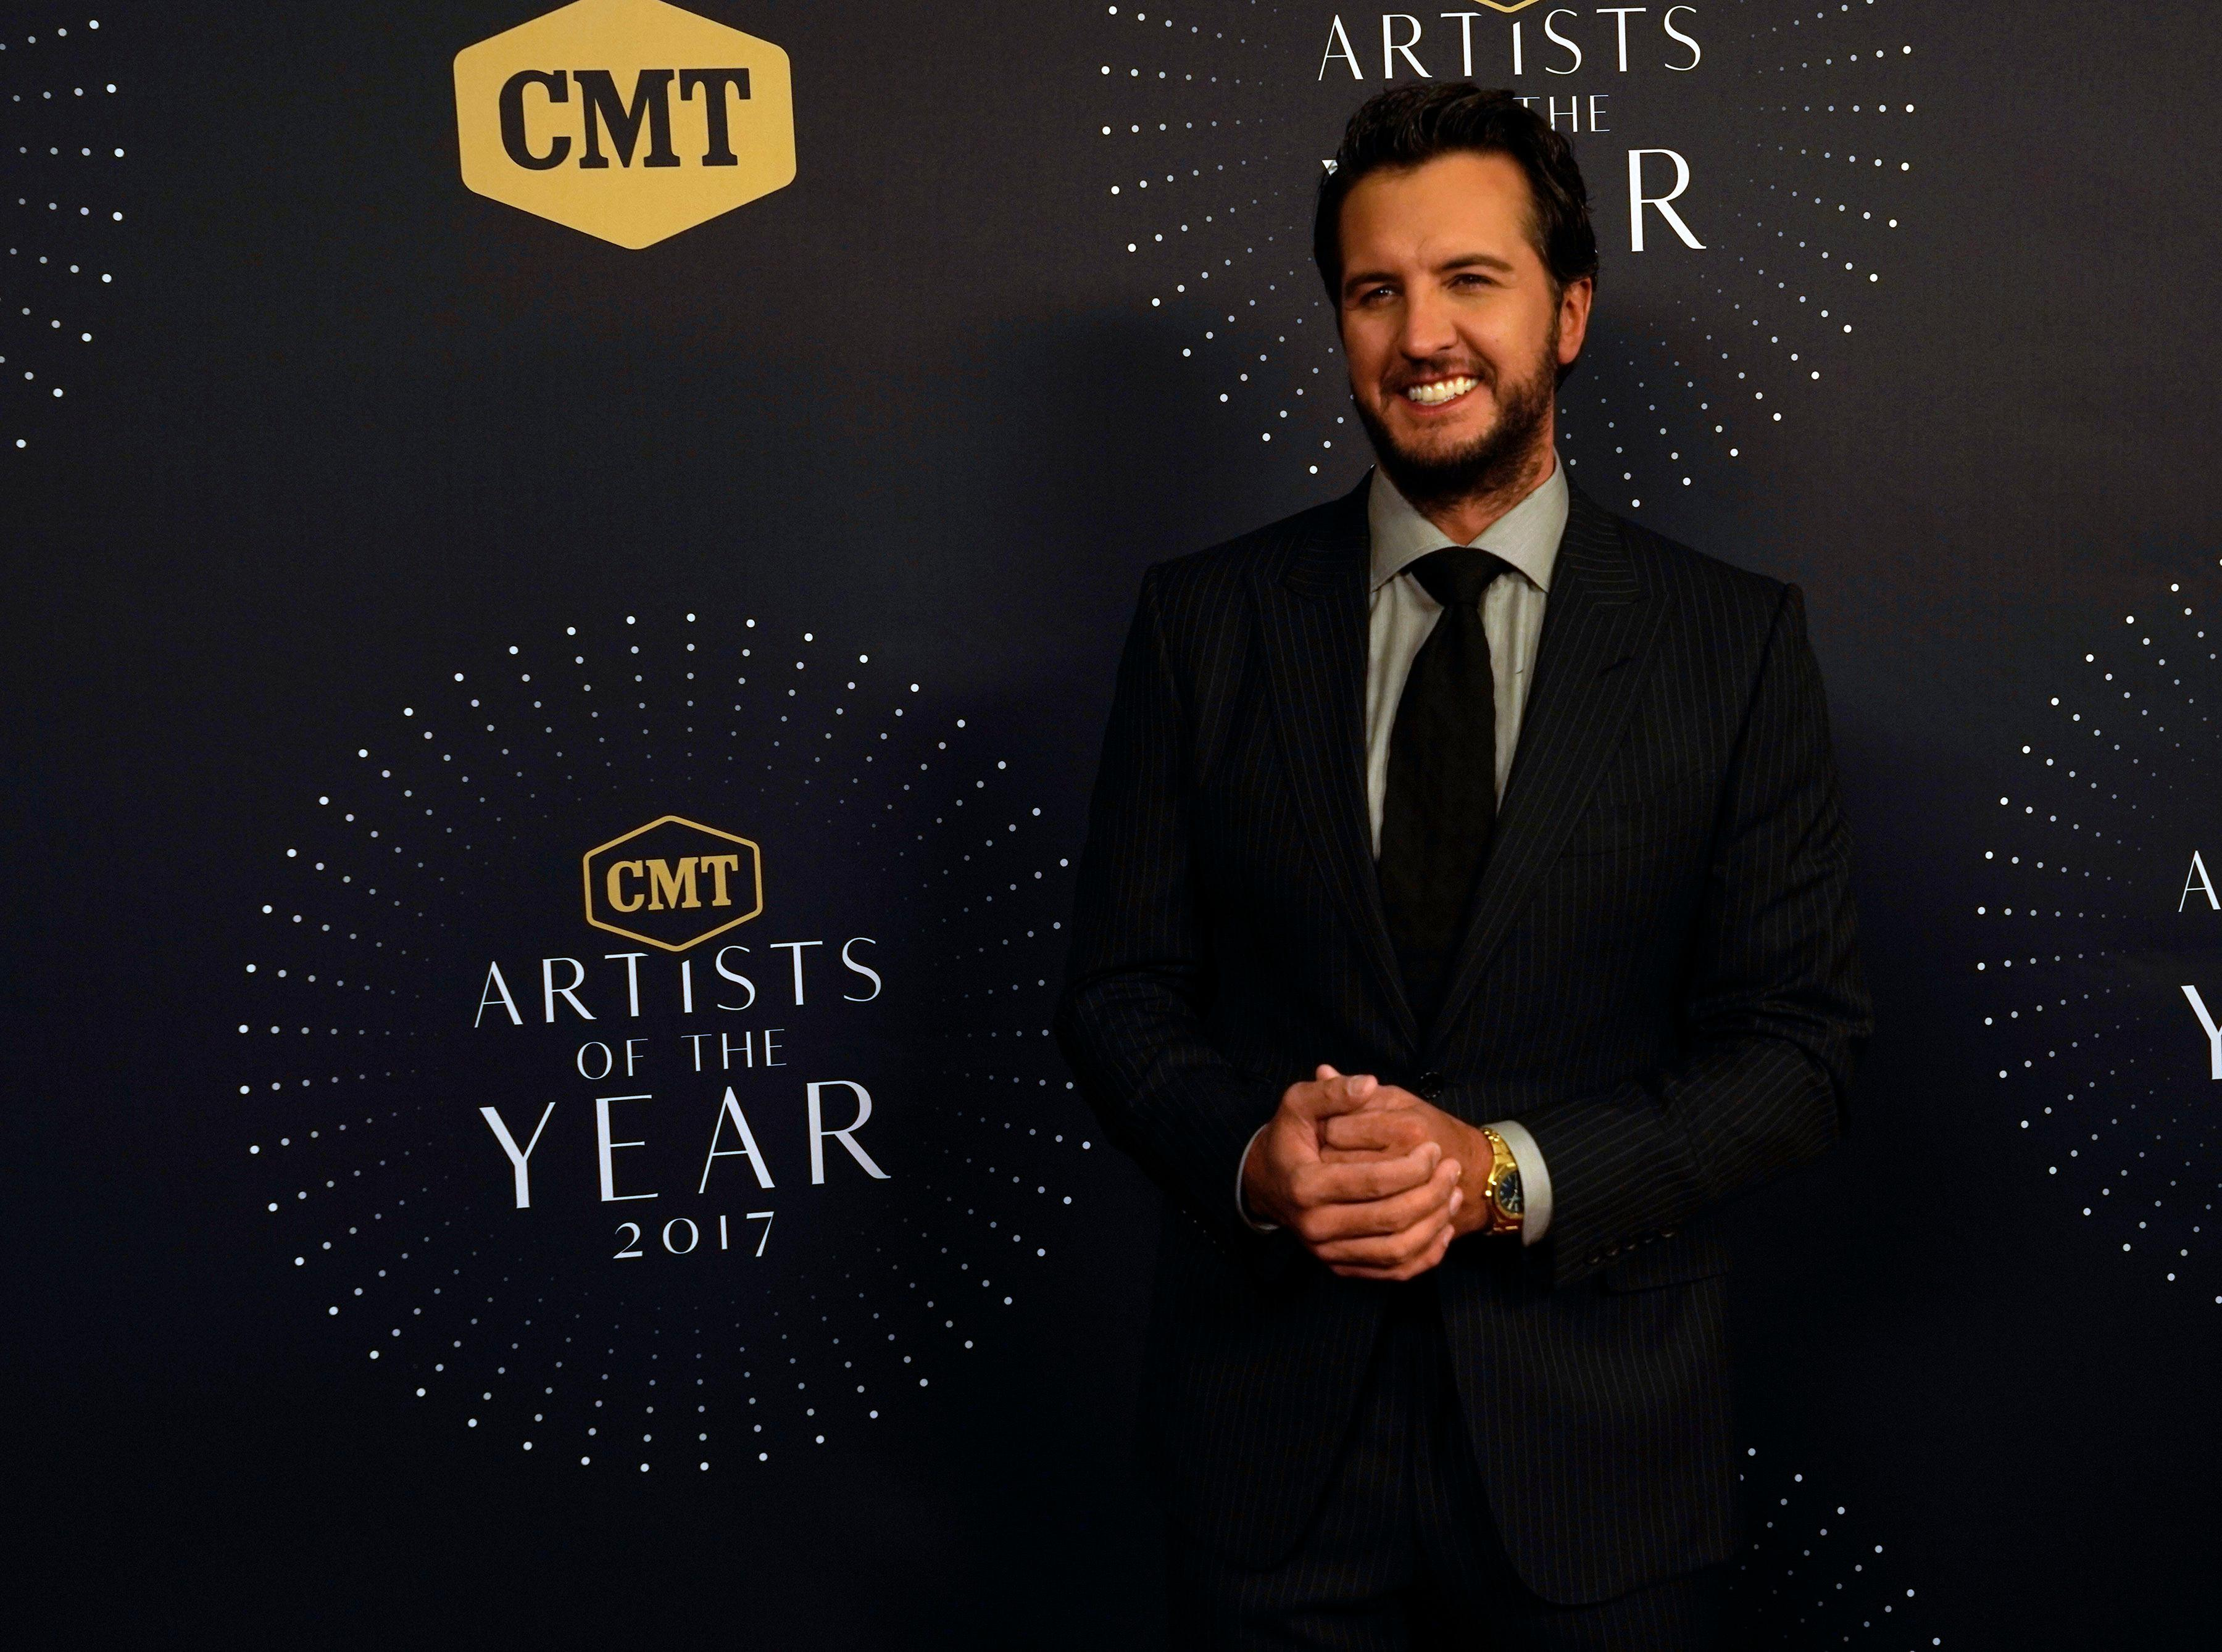 Luke Bryan seen at 2017 CMT Artists of the Year at Schermerhorn Symphony Center on Wednesday, Oct. 18, 2017, in Nashville, Tenn. (Photo by Sanford Myers/Invision/AP)